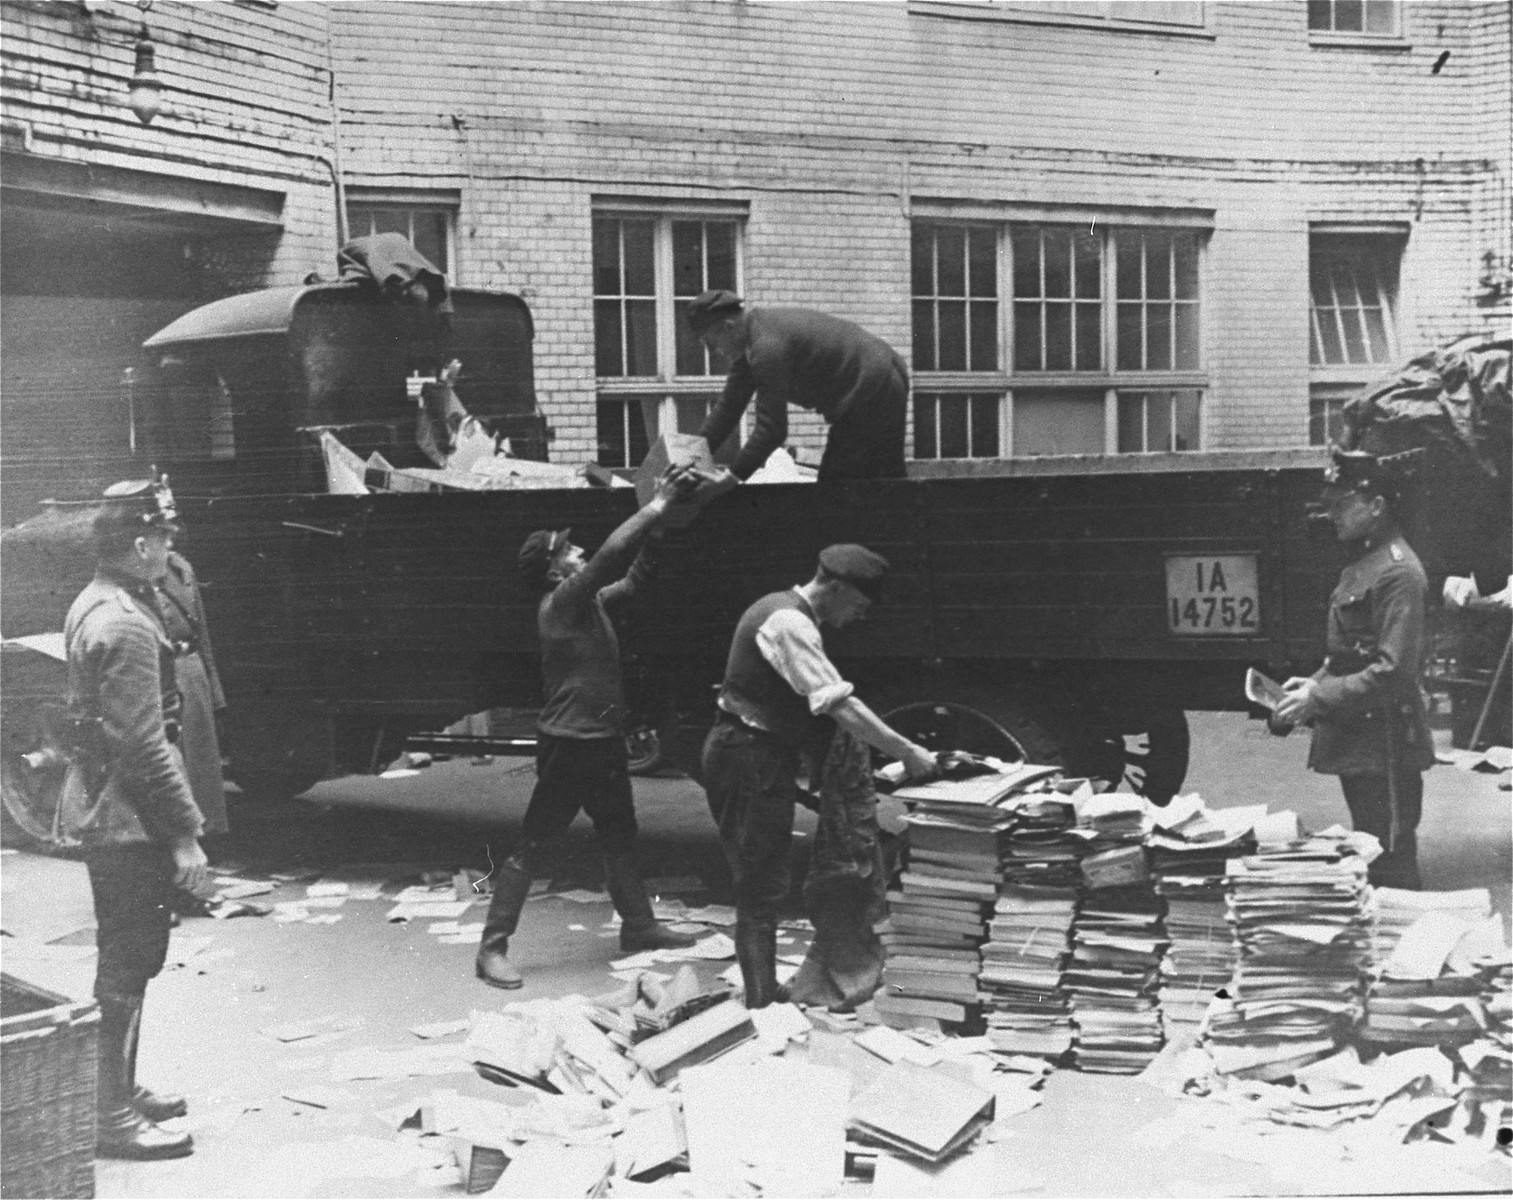 Civilians load Communist publications onto the back of a truck as police look on during a raid of the Karl-Liebknecht House (KPD headquarters), which was on the Buelowplatz in Berlin.    The closing of Communist Party offices was declared necessary for the protection of the state in the Enabling Act, passed by the Reichstag soon after the fire of 28 February 1933.